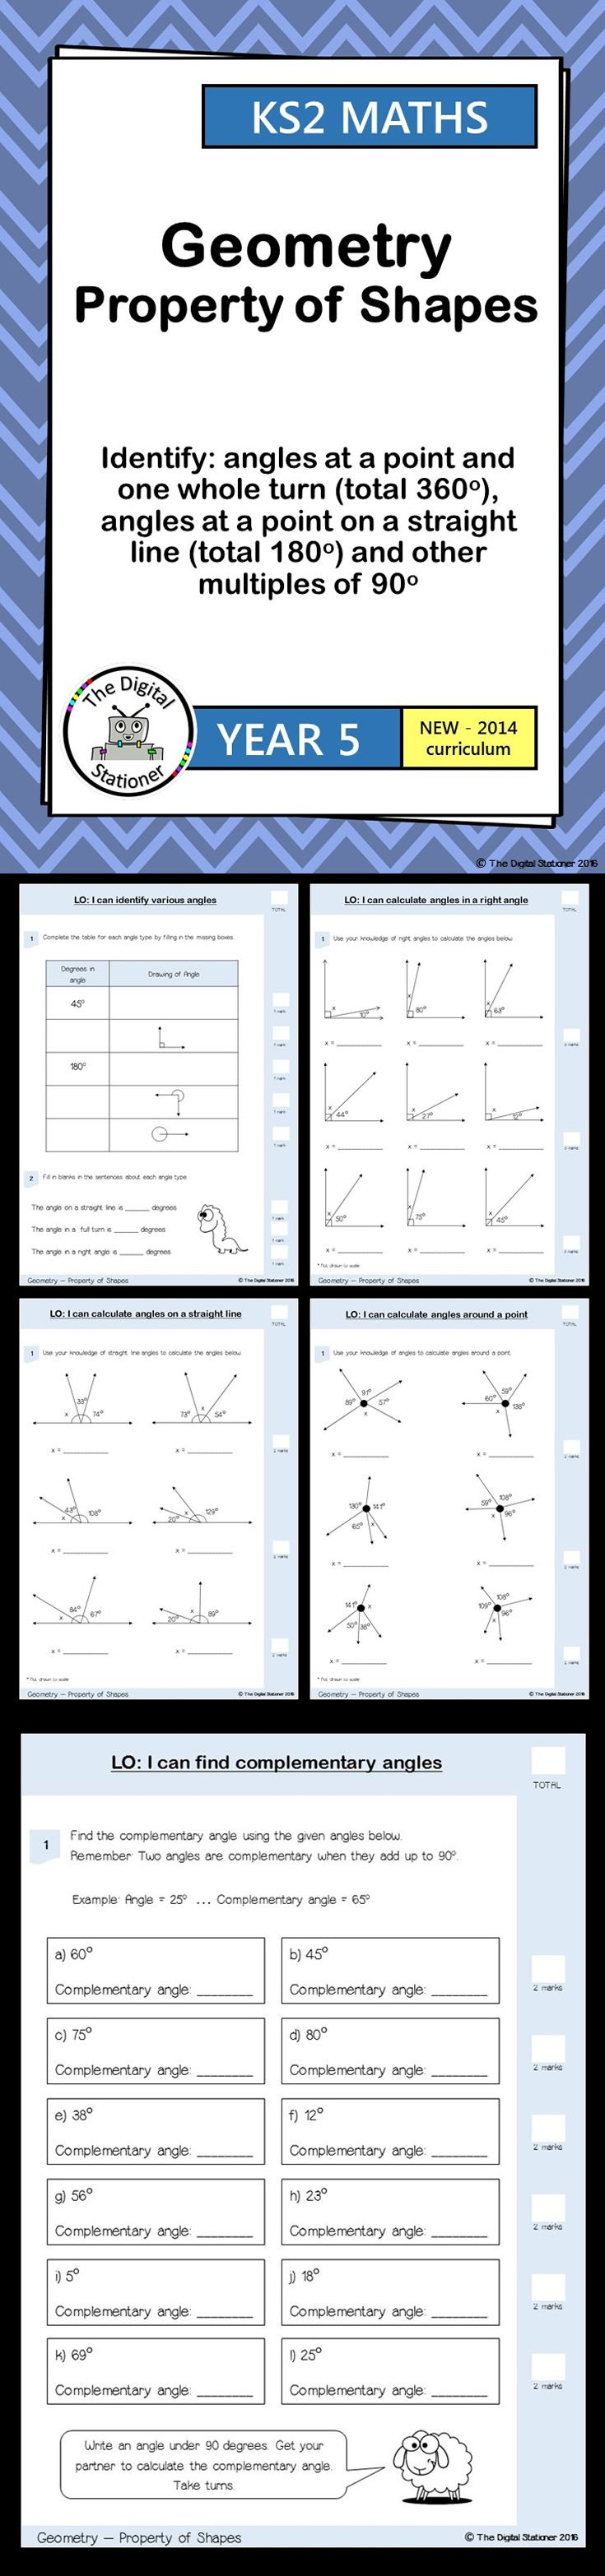 Year 5 - Identify angles in full turn, straight line & other 90 degrees - Geometry - Properyy of shape  (inc. mastery). 8 PDF printables. These include worksheets, mastery, extension and resource cards all designed for the 2014 curriculum.